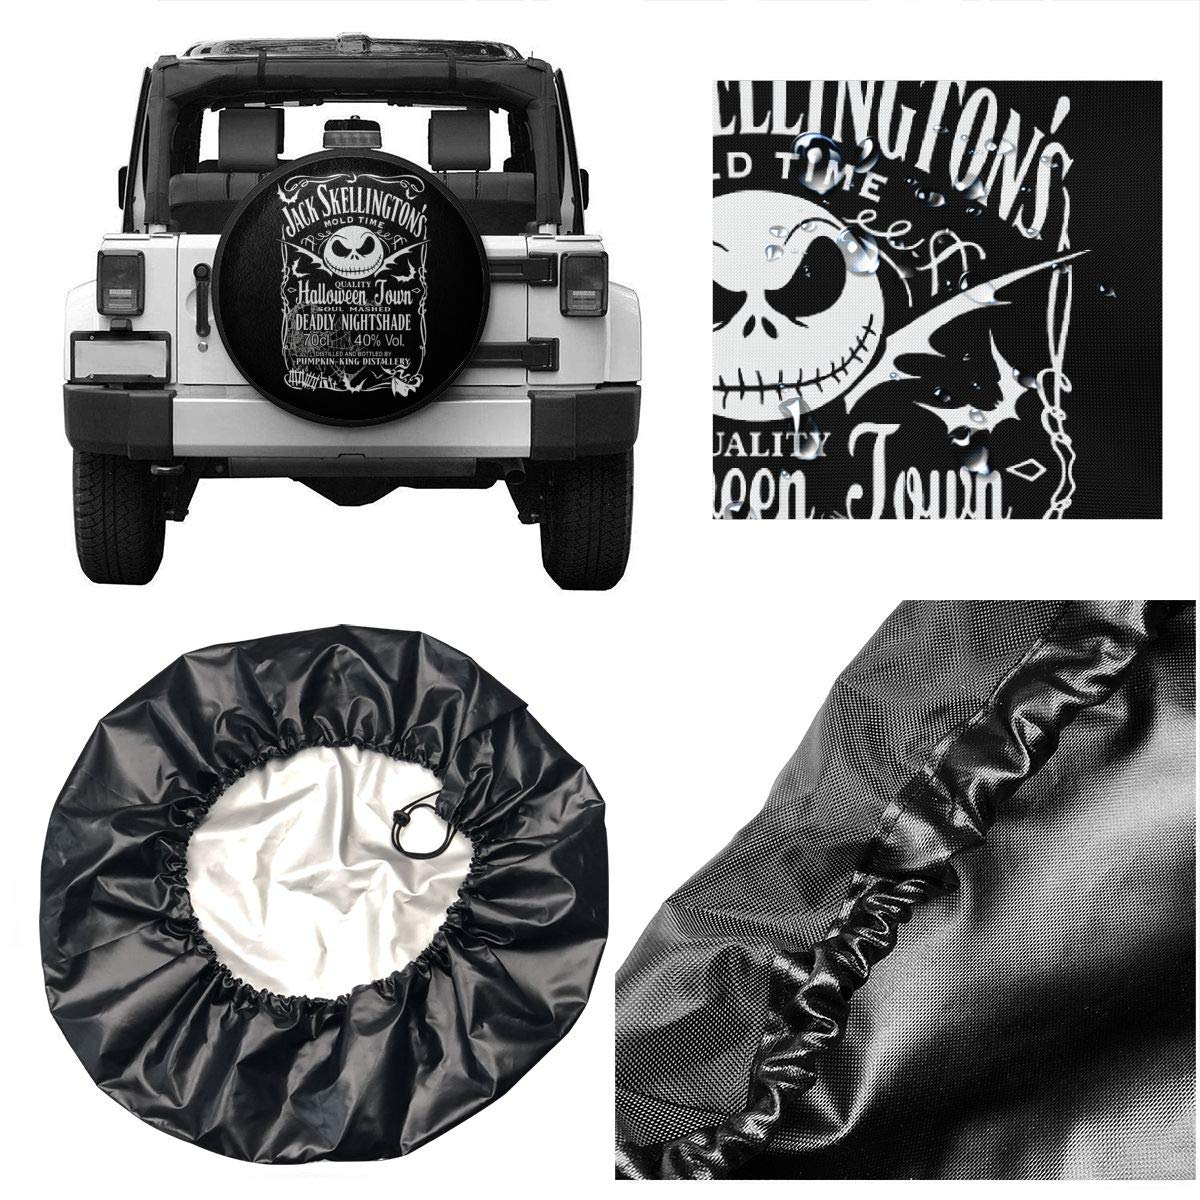 SUV and Various Vehicles RV VIORICA Spare Tire Cover Nightmare Before Xmas Pumkin King Distollery Halloween Car Tire Cover Sunscreen Protective Spare Wheel Cover Fit for Jeep Trailer